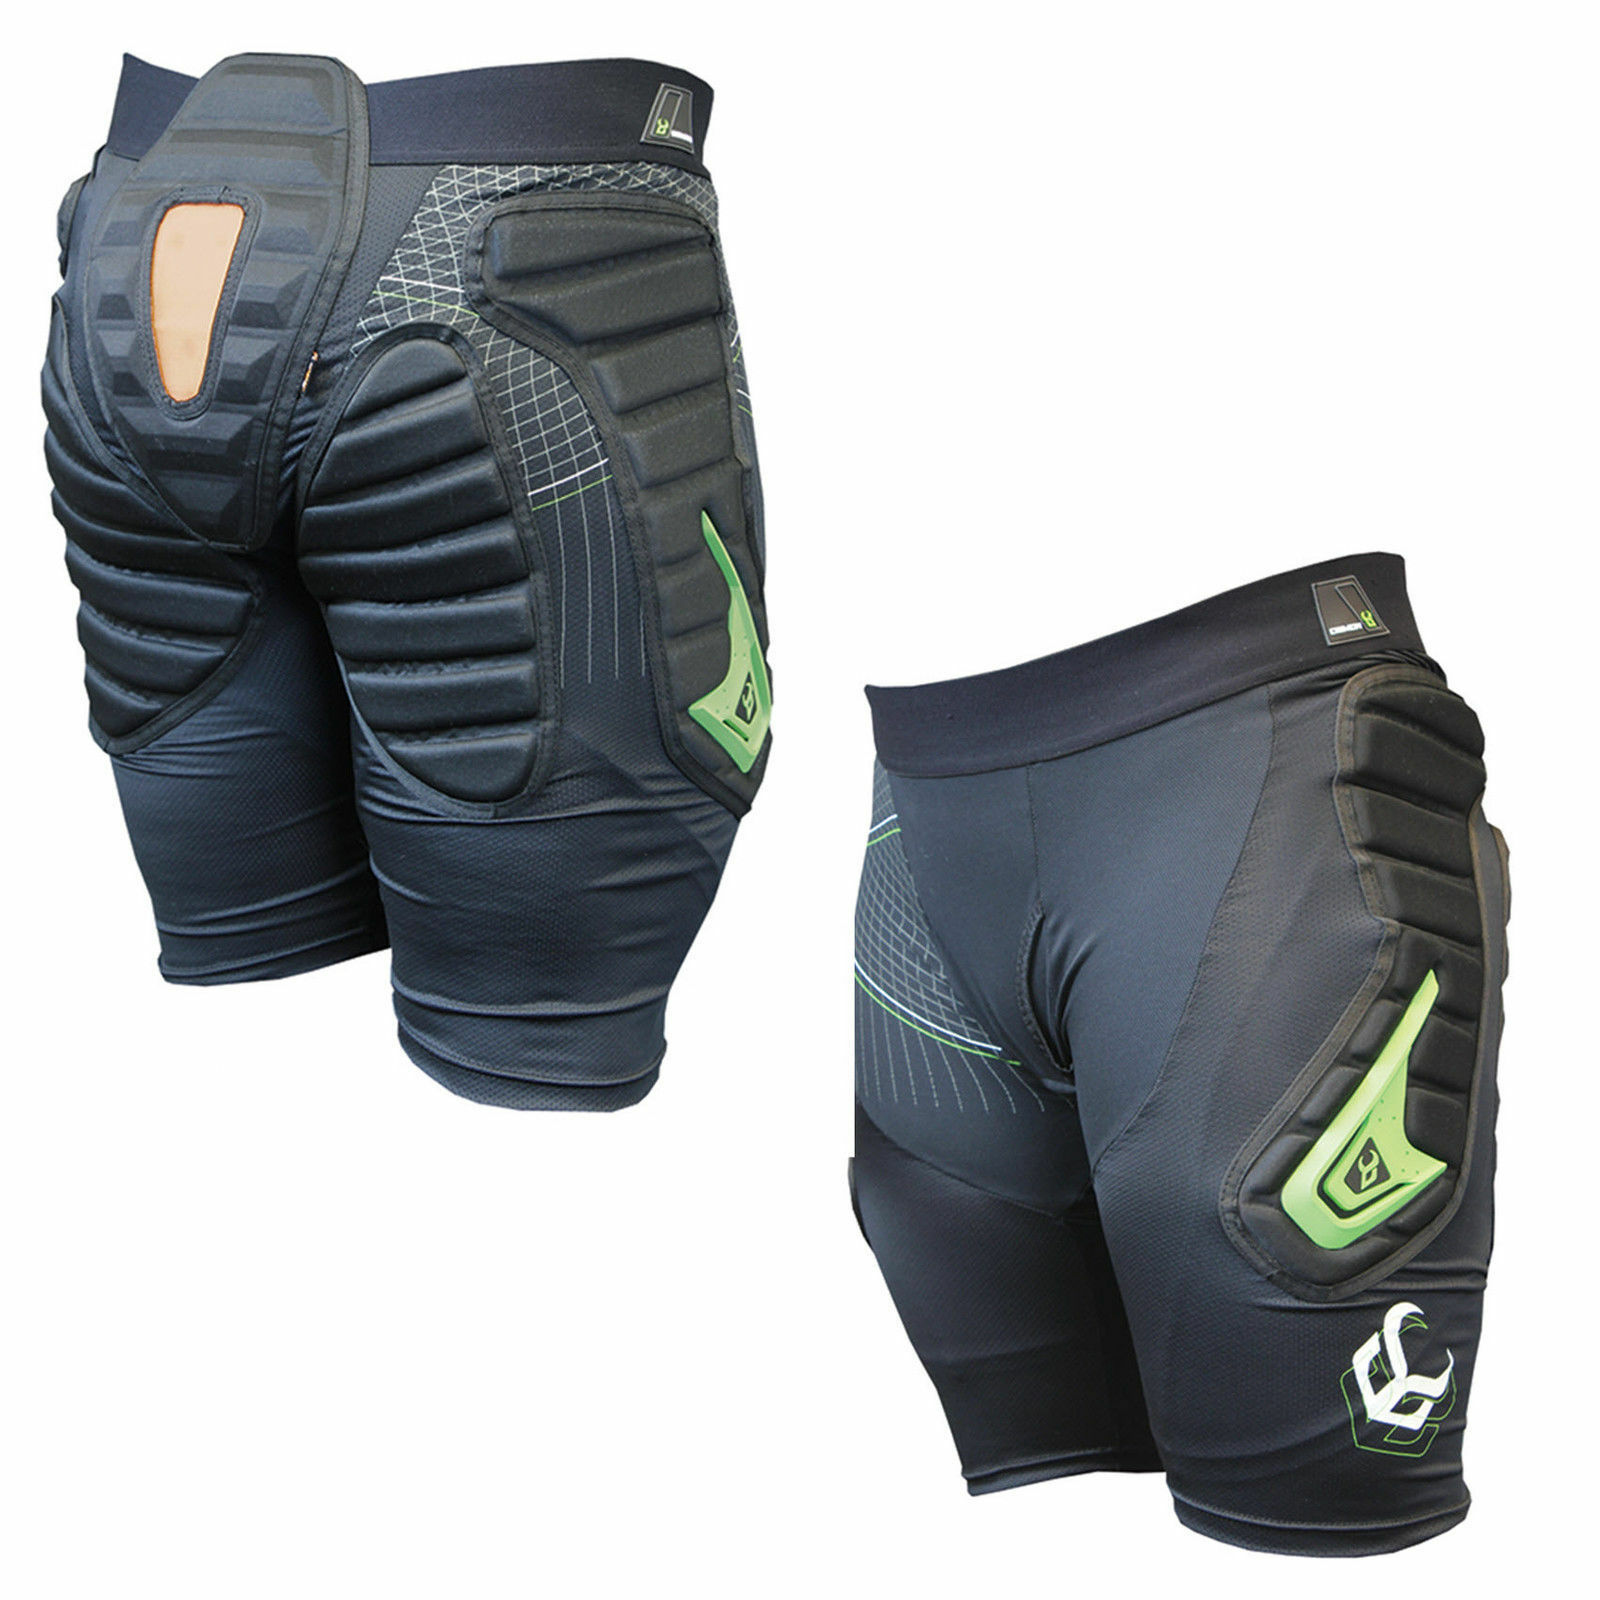 Demon Flex Force X D30 Impact Shorts, Snowboard, Skiing